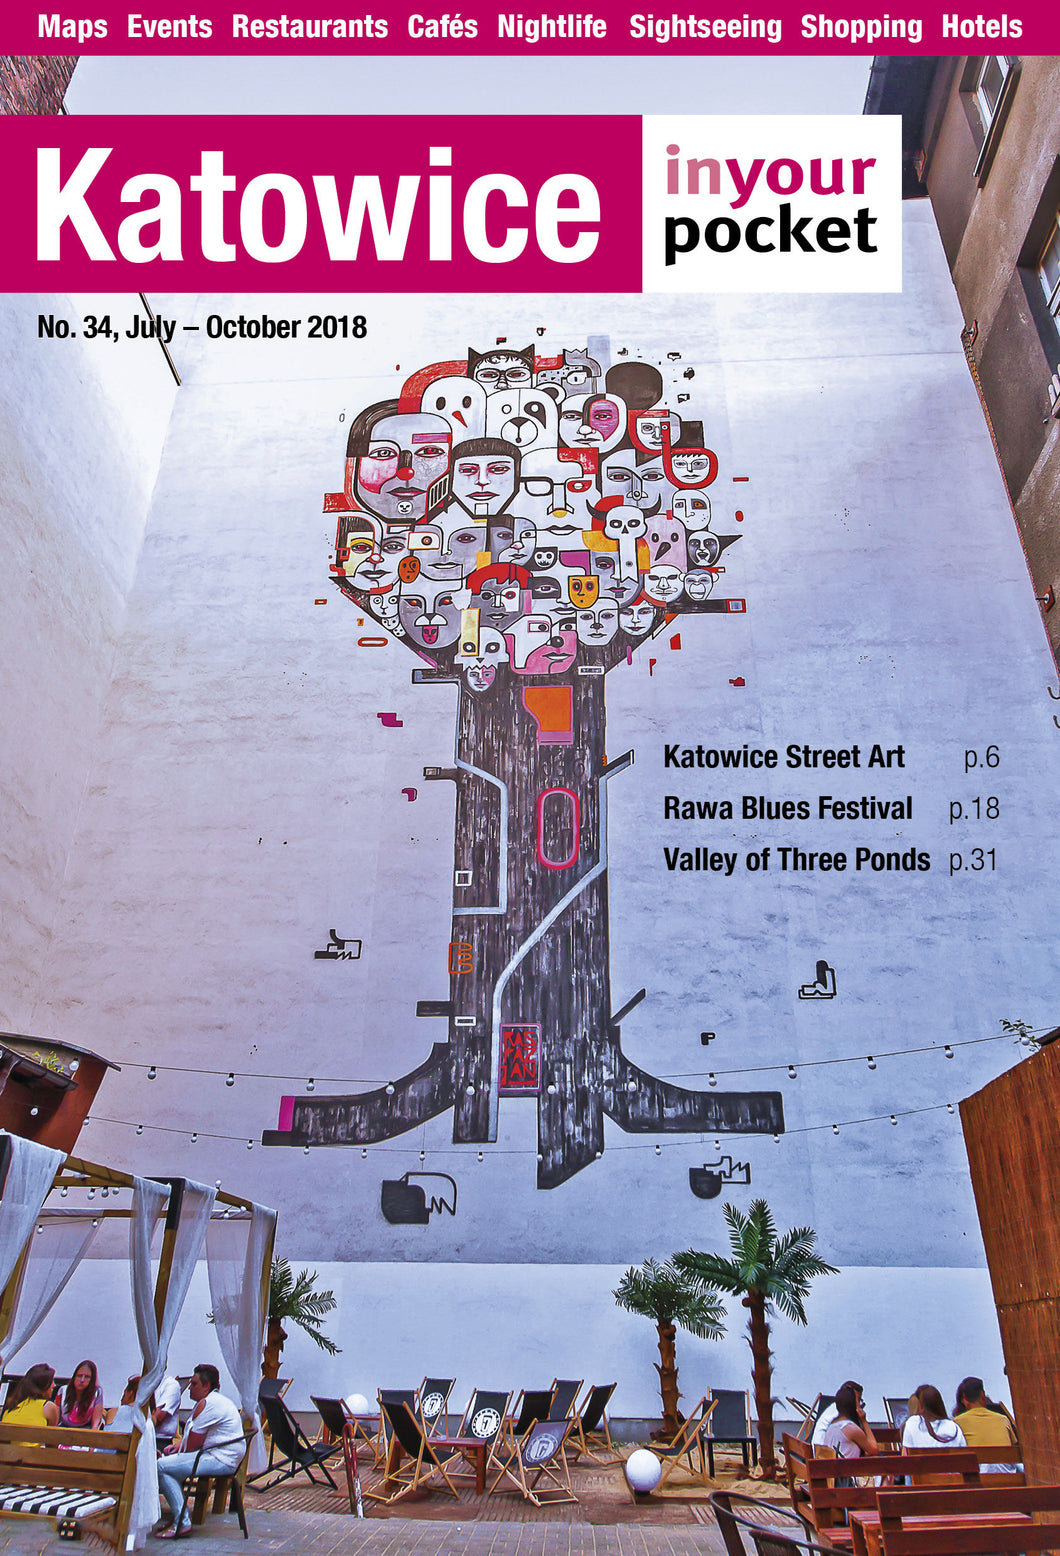 Katowice In Your Pocket Printed Full Guide